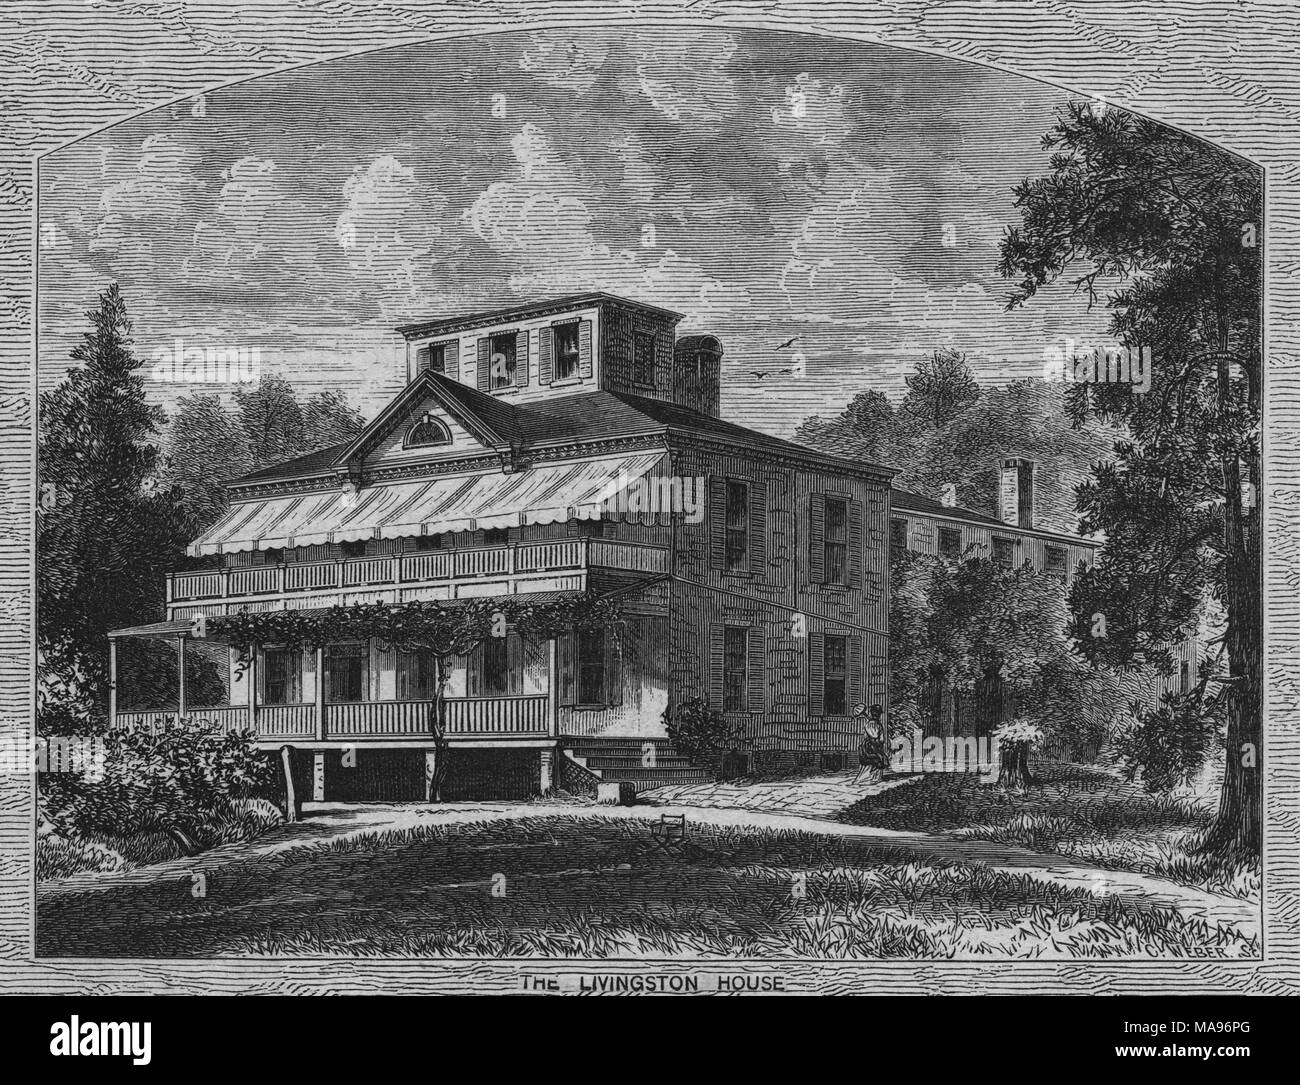 Wood engraving of the New Jersey house commonly known as Liberty Hall, built by William Livingston, governor of New Jersey during the late 18th century, 1849. From the New York Public Library. () - Stock Image